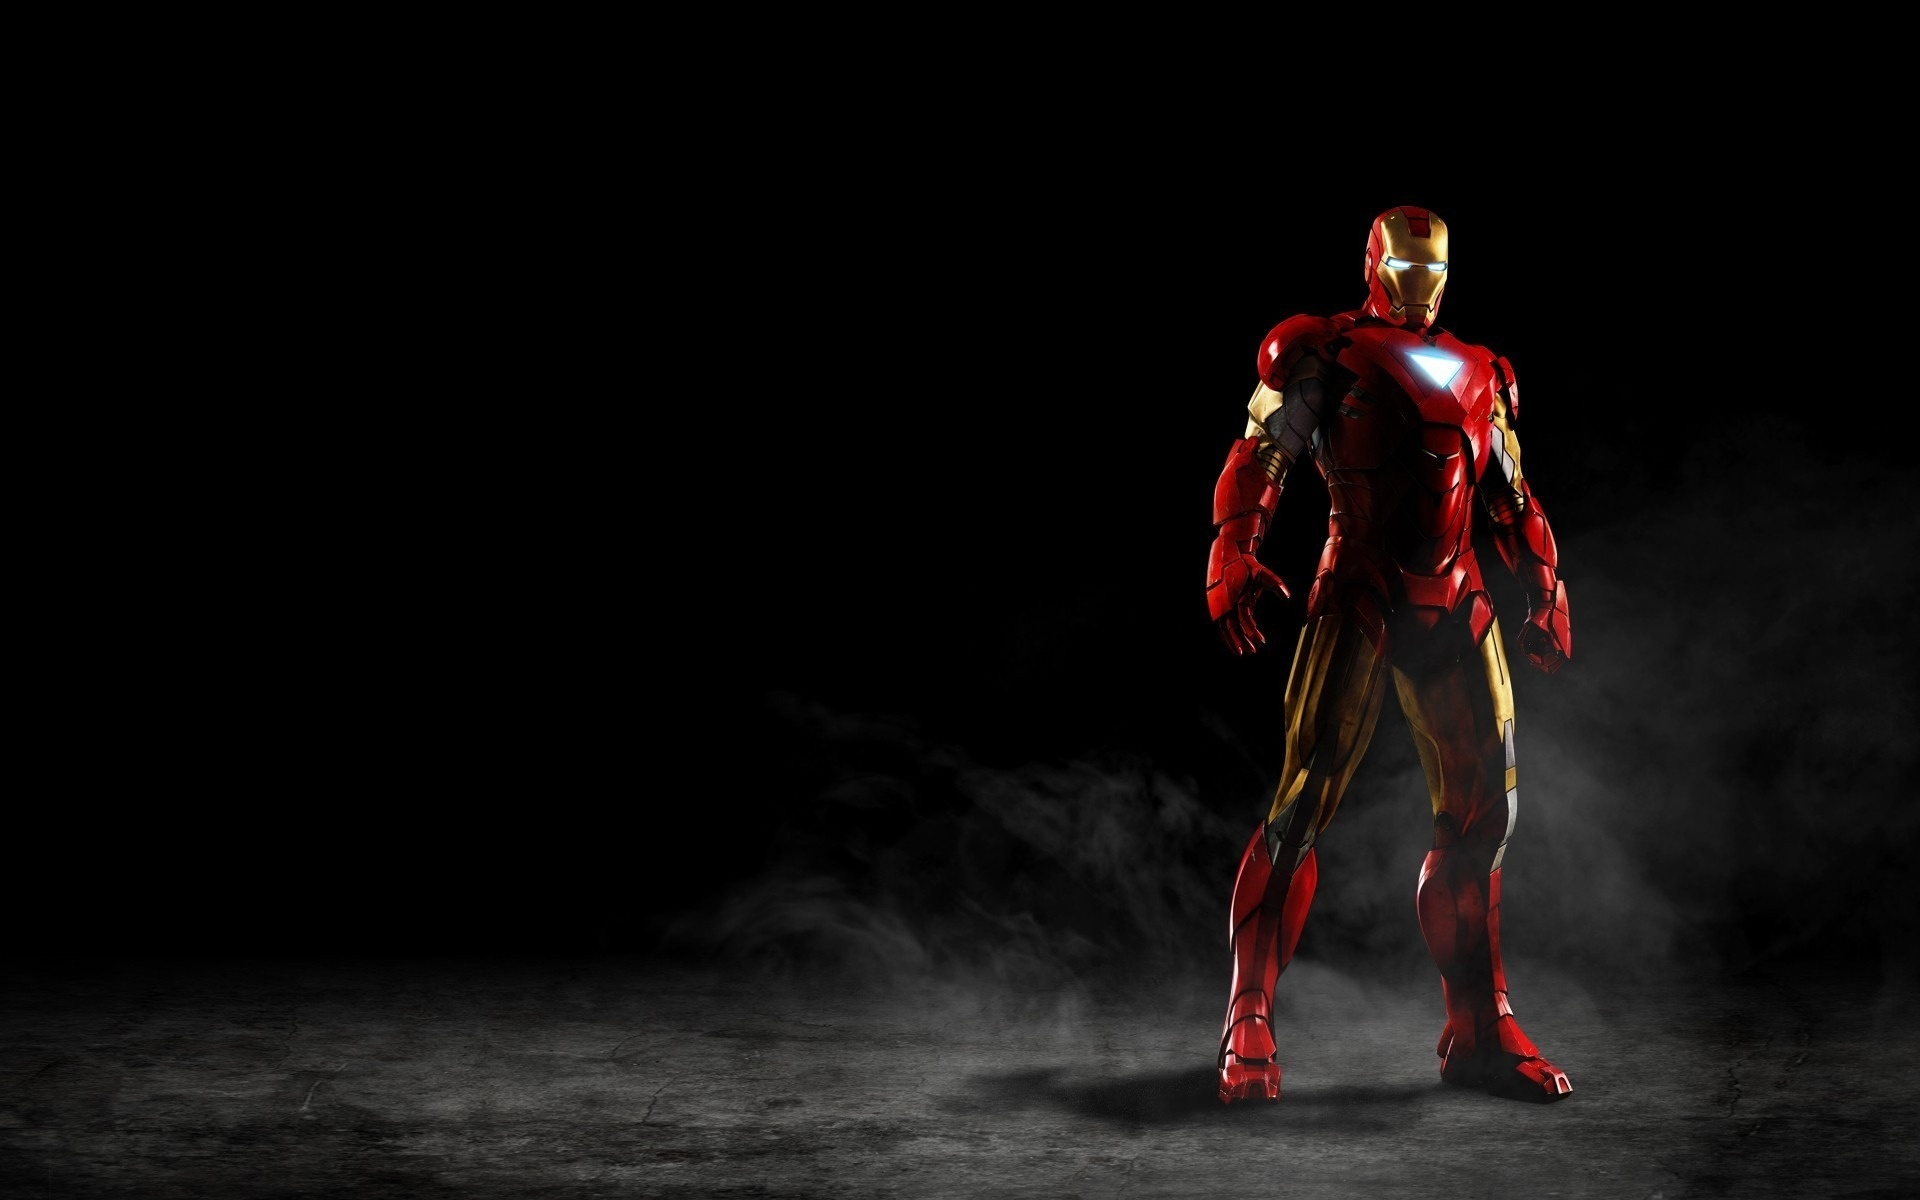 Iron Man   Iron Man 3 Wallpaper 31780175 1920x1200